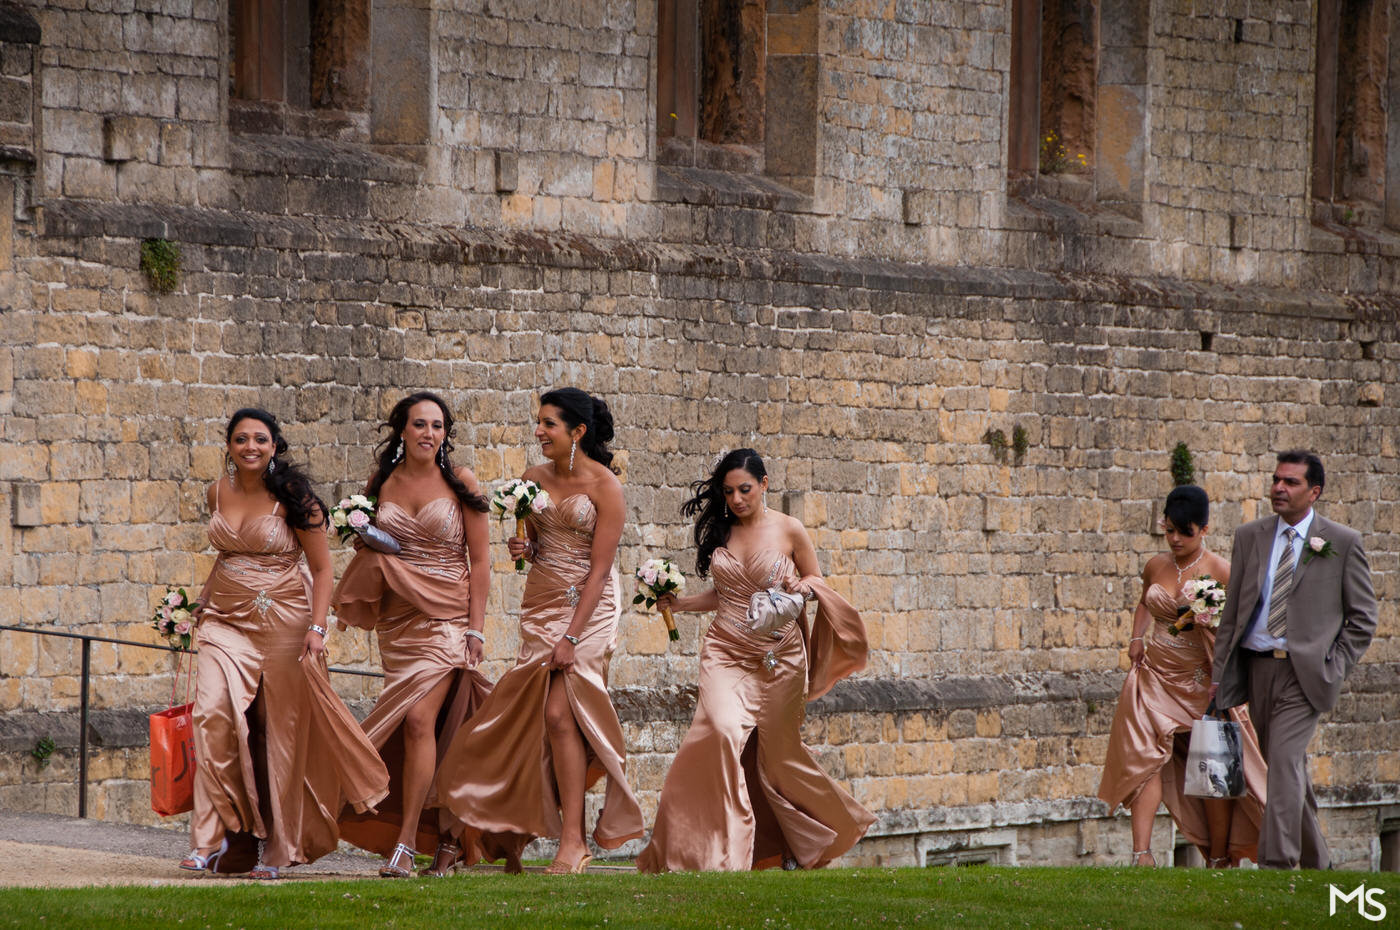 Bolsover-Castle-Indian-wedding - 6_DSC_4525.jpg